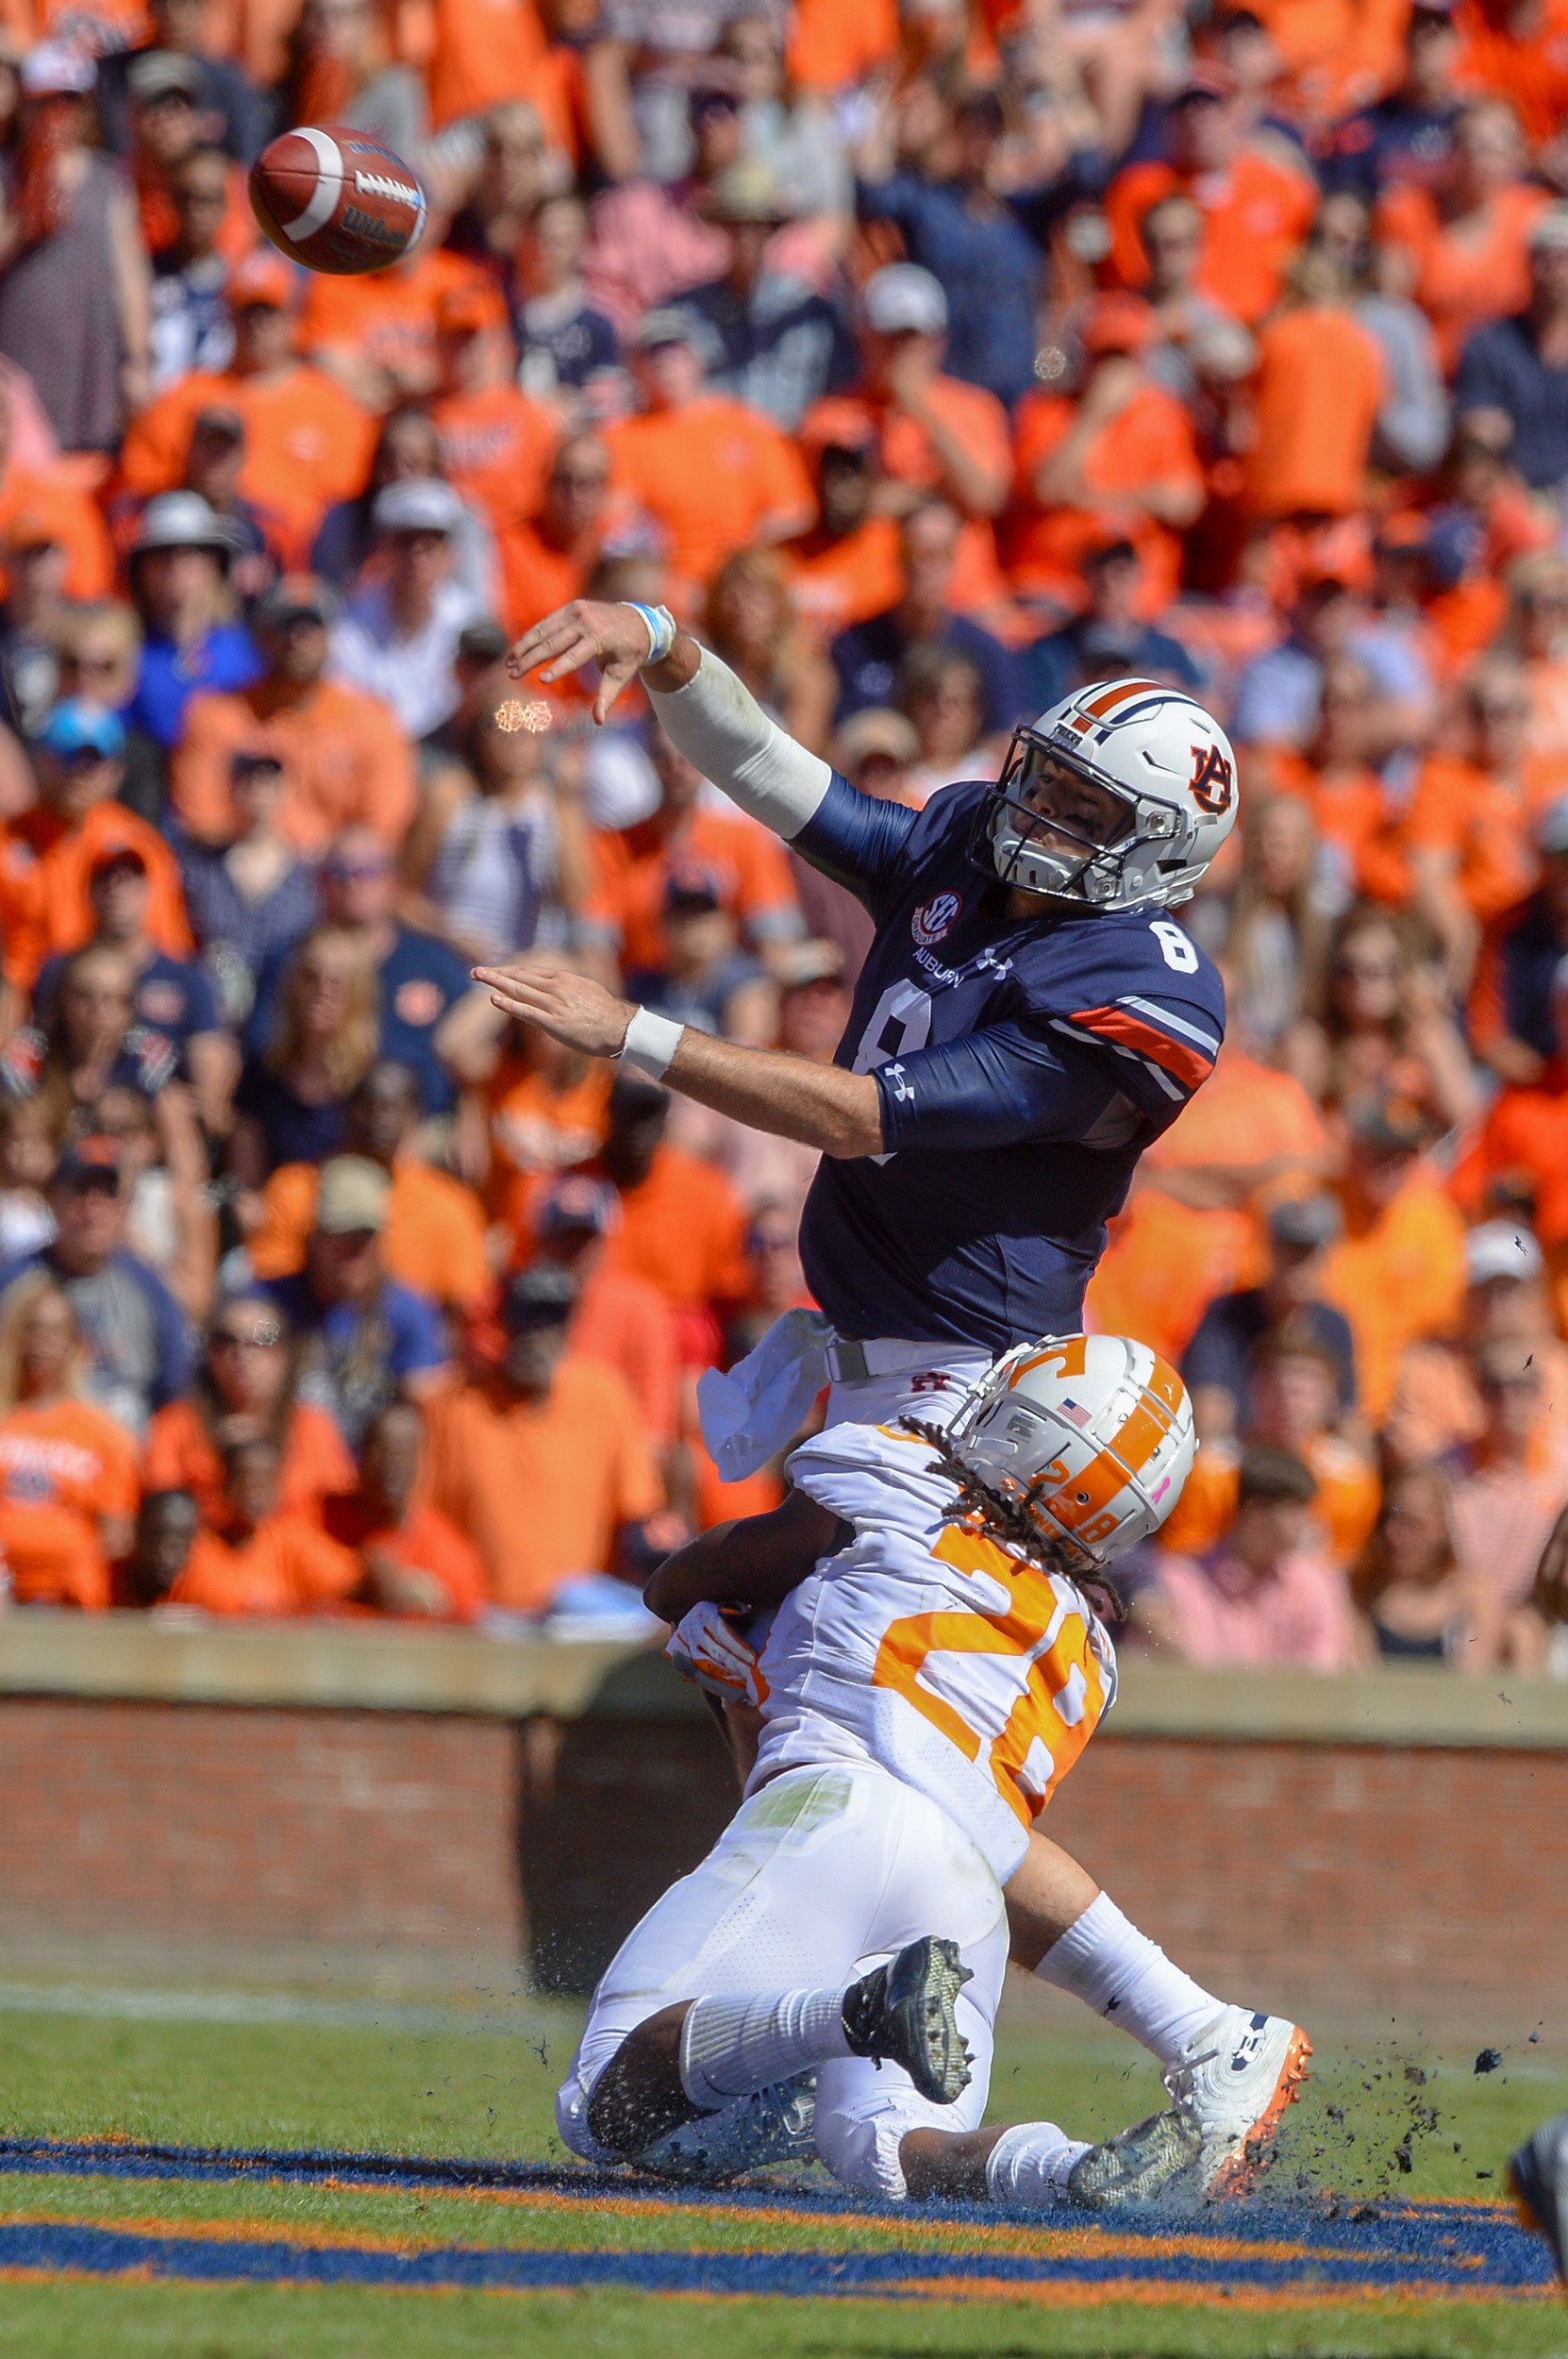 Auburn Tigers quarterback Jarrett Stidham (8) is pressured by Tennessee Volunteers defensive back Baylen Buchanan (28) during the first half of Saturday's game, at Jordan-Hare Stadium in Auburn, AL. Daily Mountain Eagle -  Jeff Johnsey